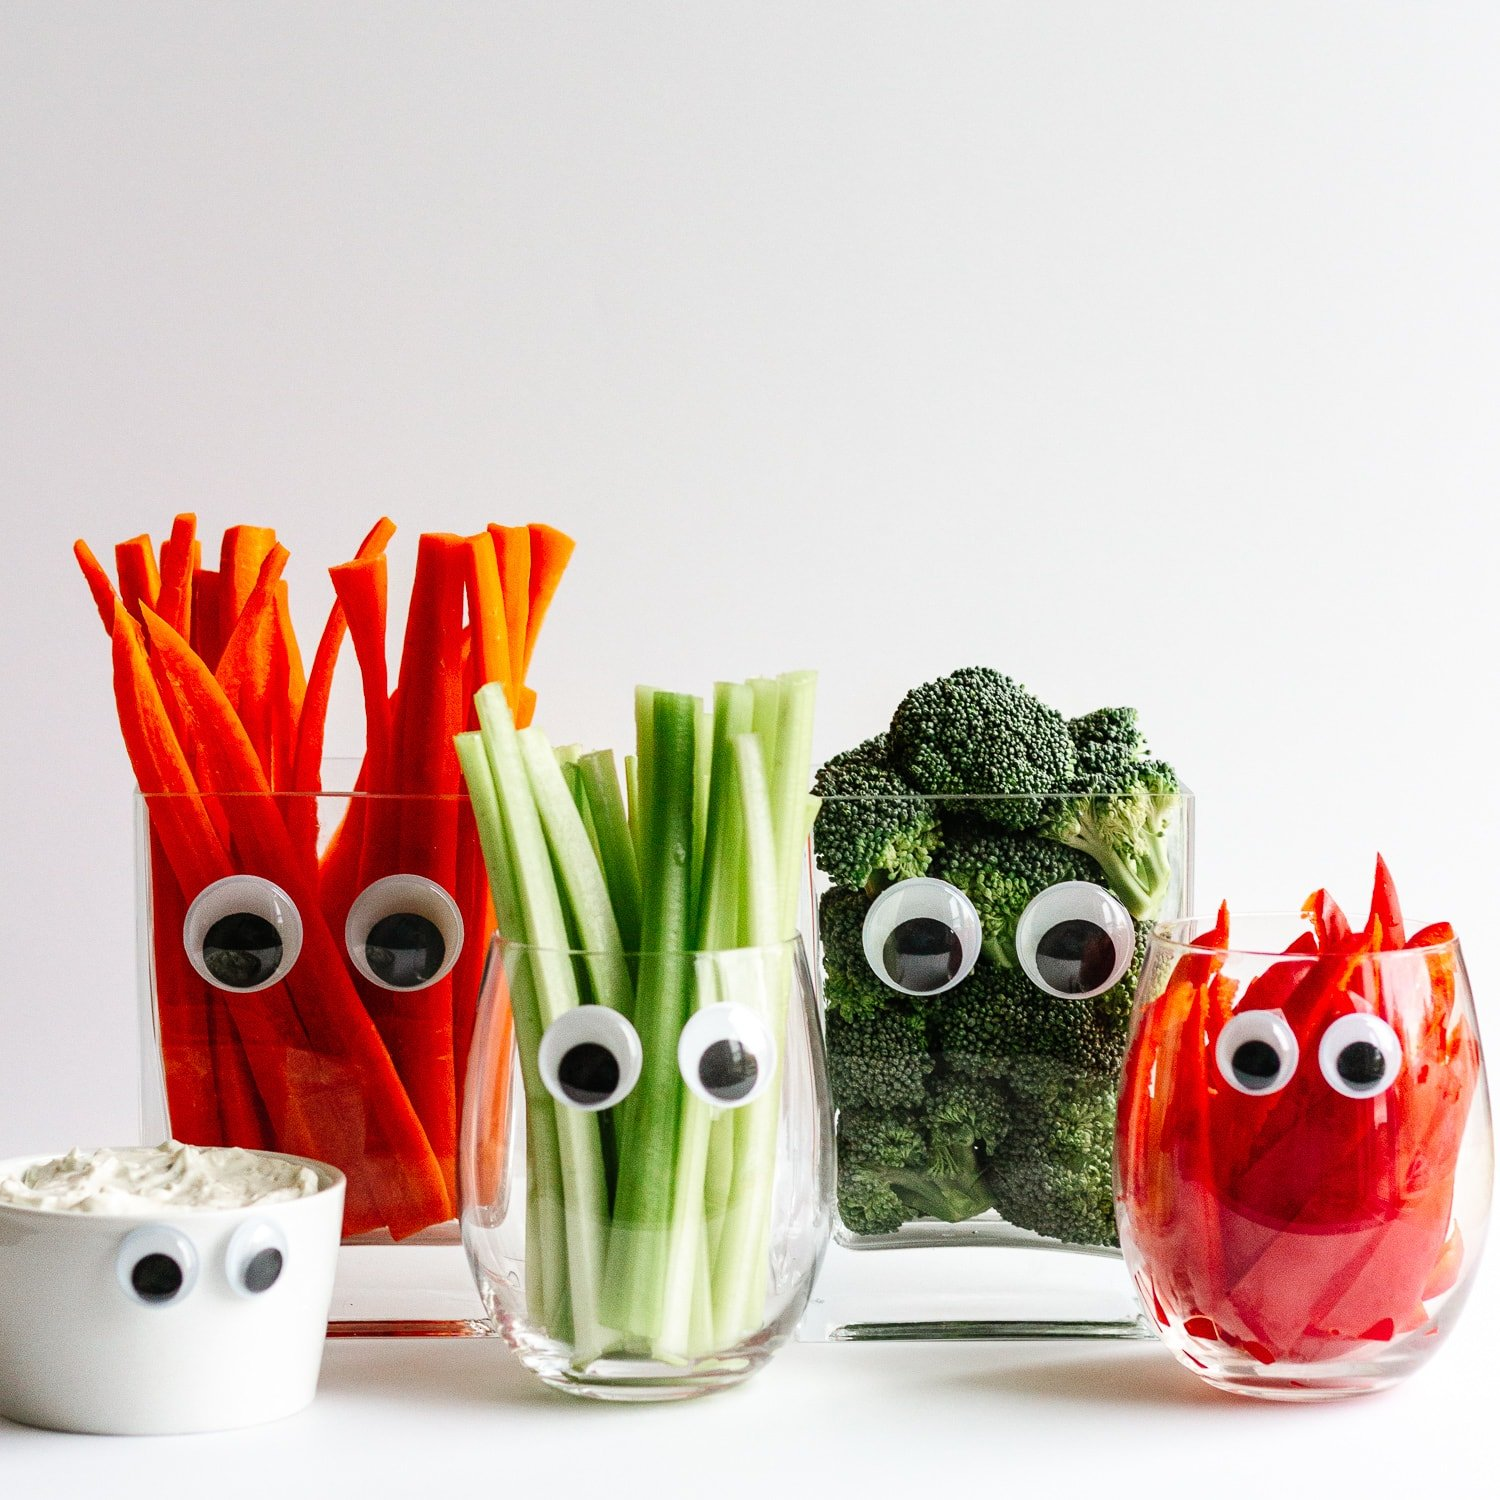 Monster Veggies and Dip: Variety of glasses with googly eyes filled with veggies and dip for a healthy Halloween themed snack